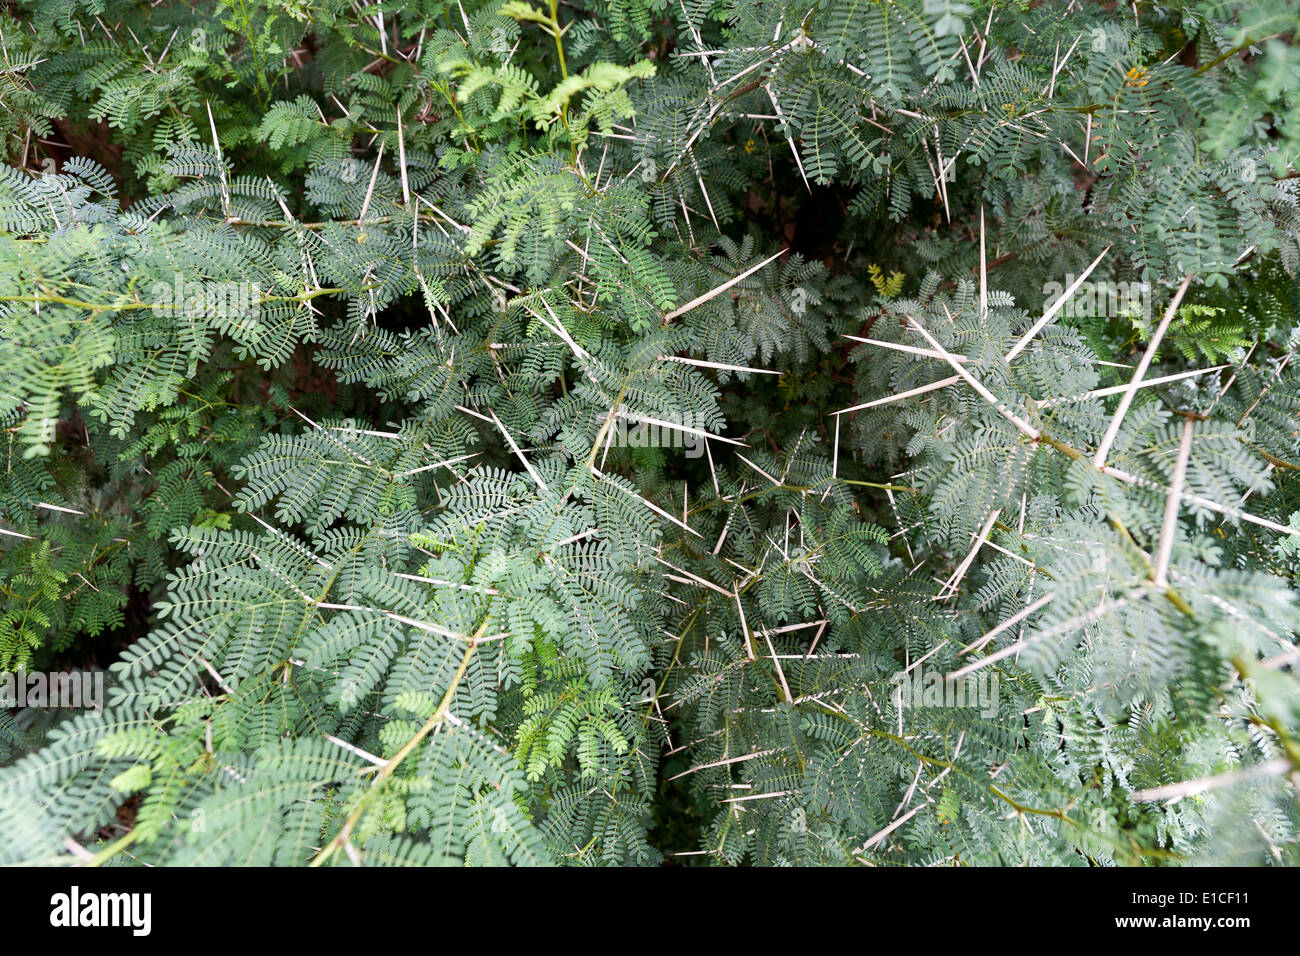 Detail of a Vachellia farnesiana bush showing leaves and spines - Stock Image